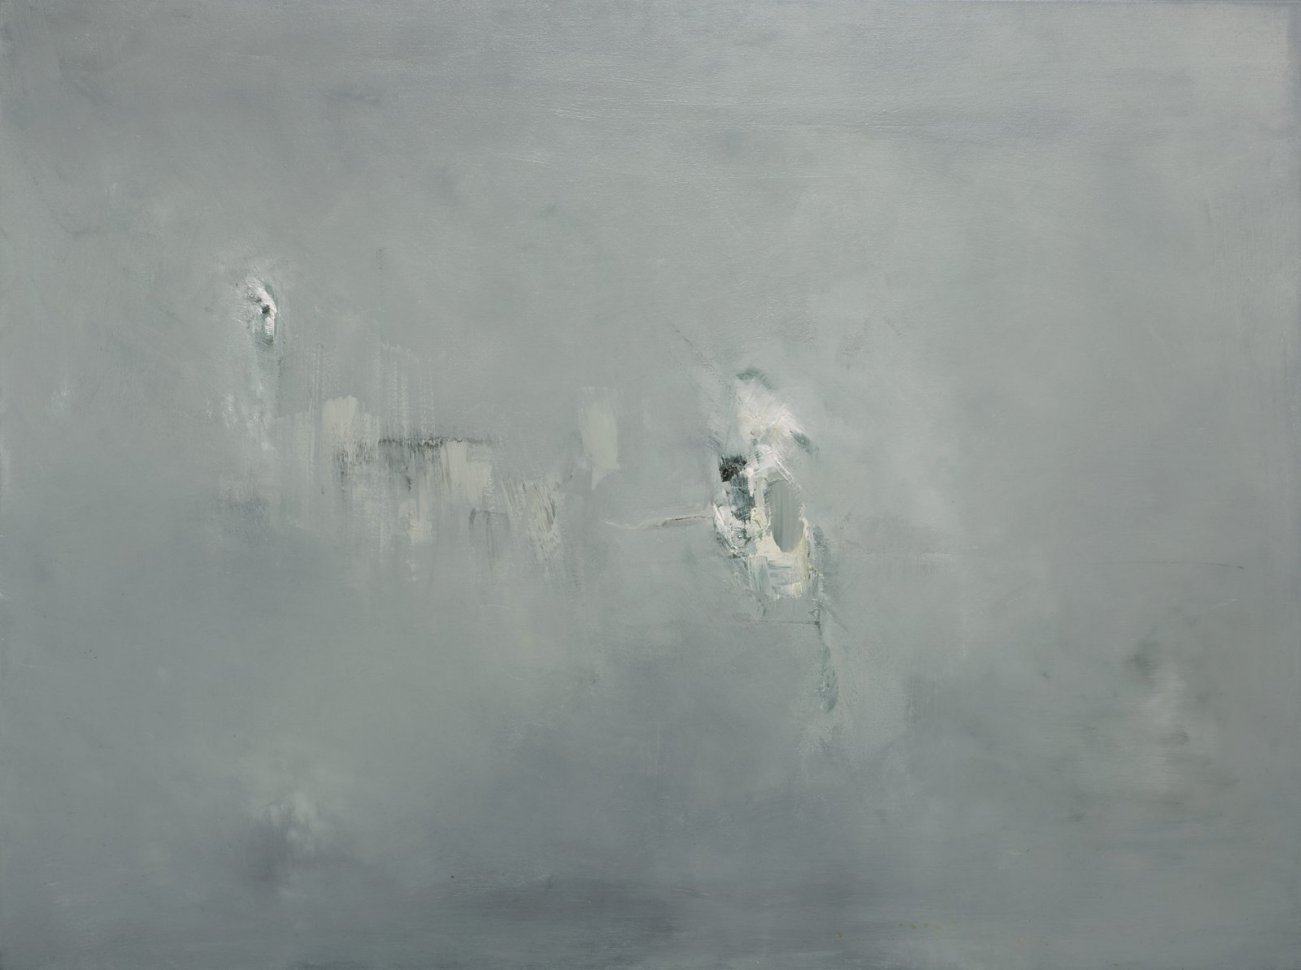 Danielle Voight Throe Awaits the Question, 2013 [DV.18] Oil on Canvas 36 x 48 in.